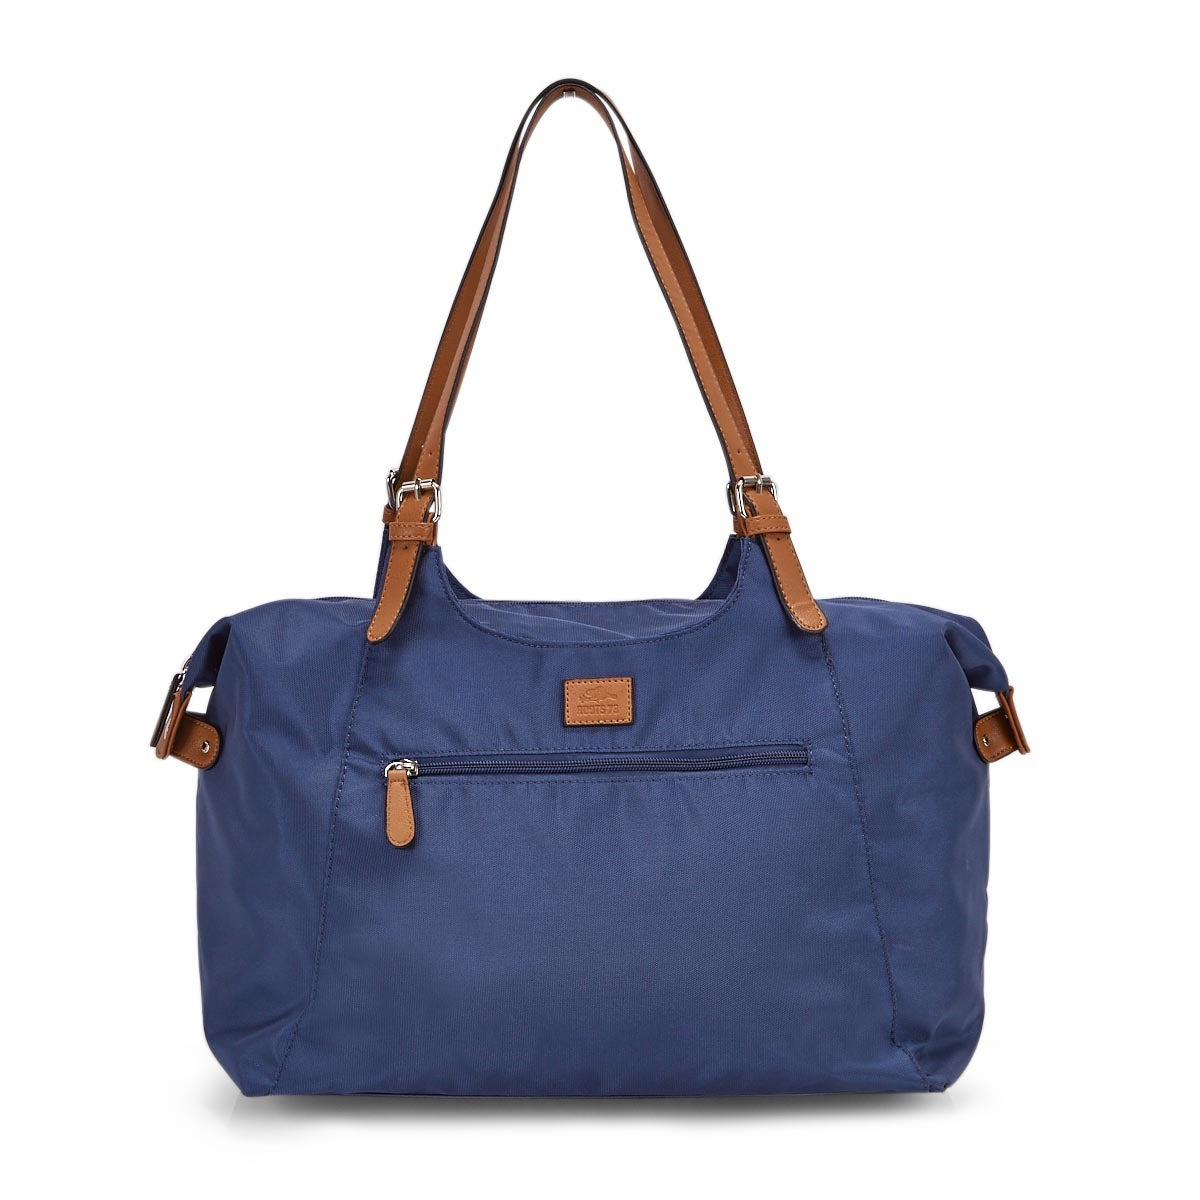 Lds Roots73 blue nylon large tote bag